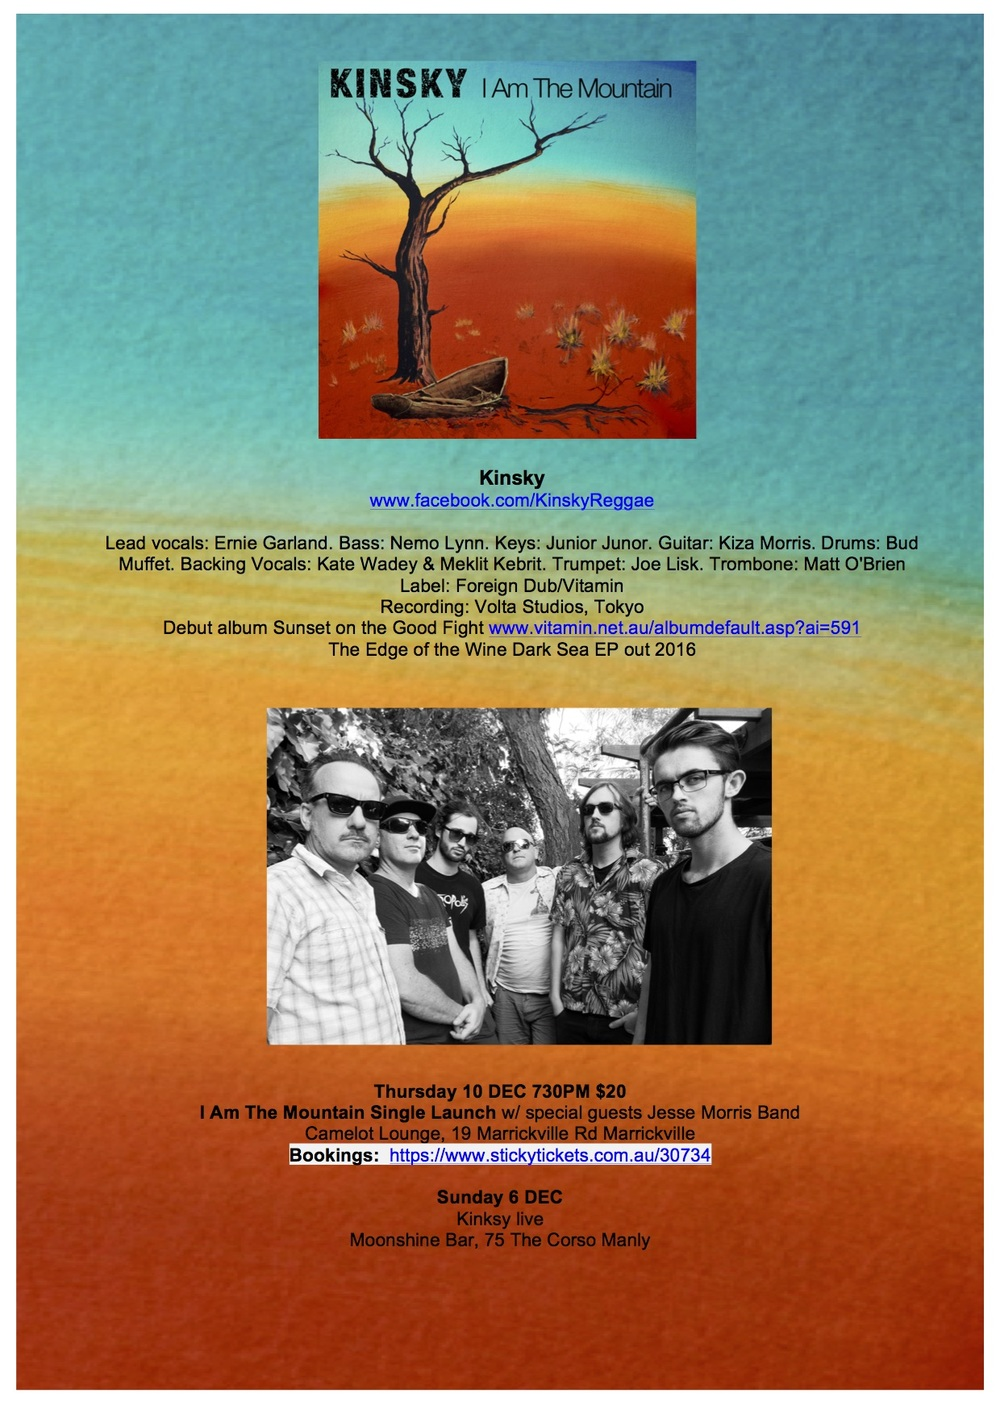 Press Release by Ace the Amara, for Kinsky (Australian roots reggae band)